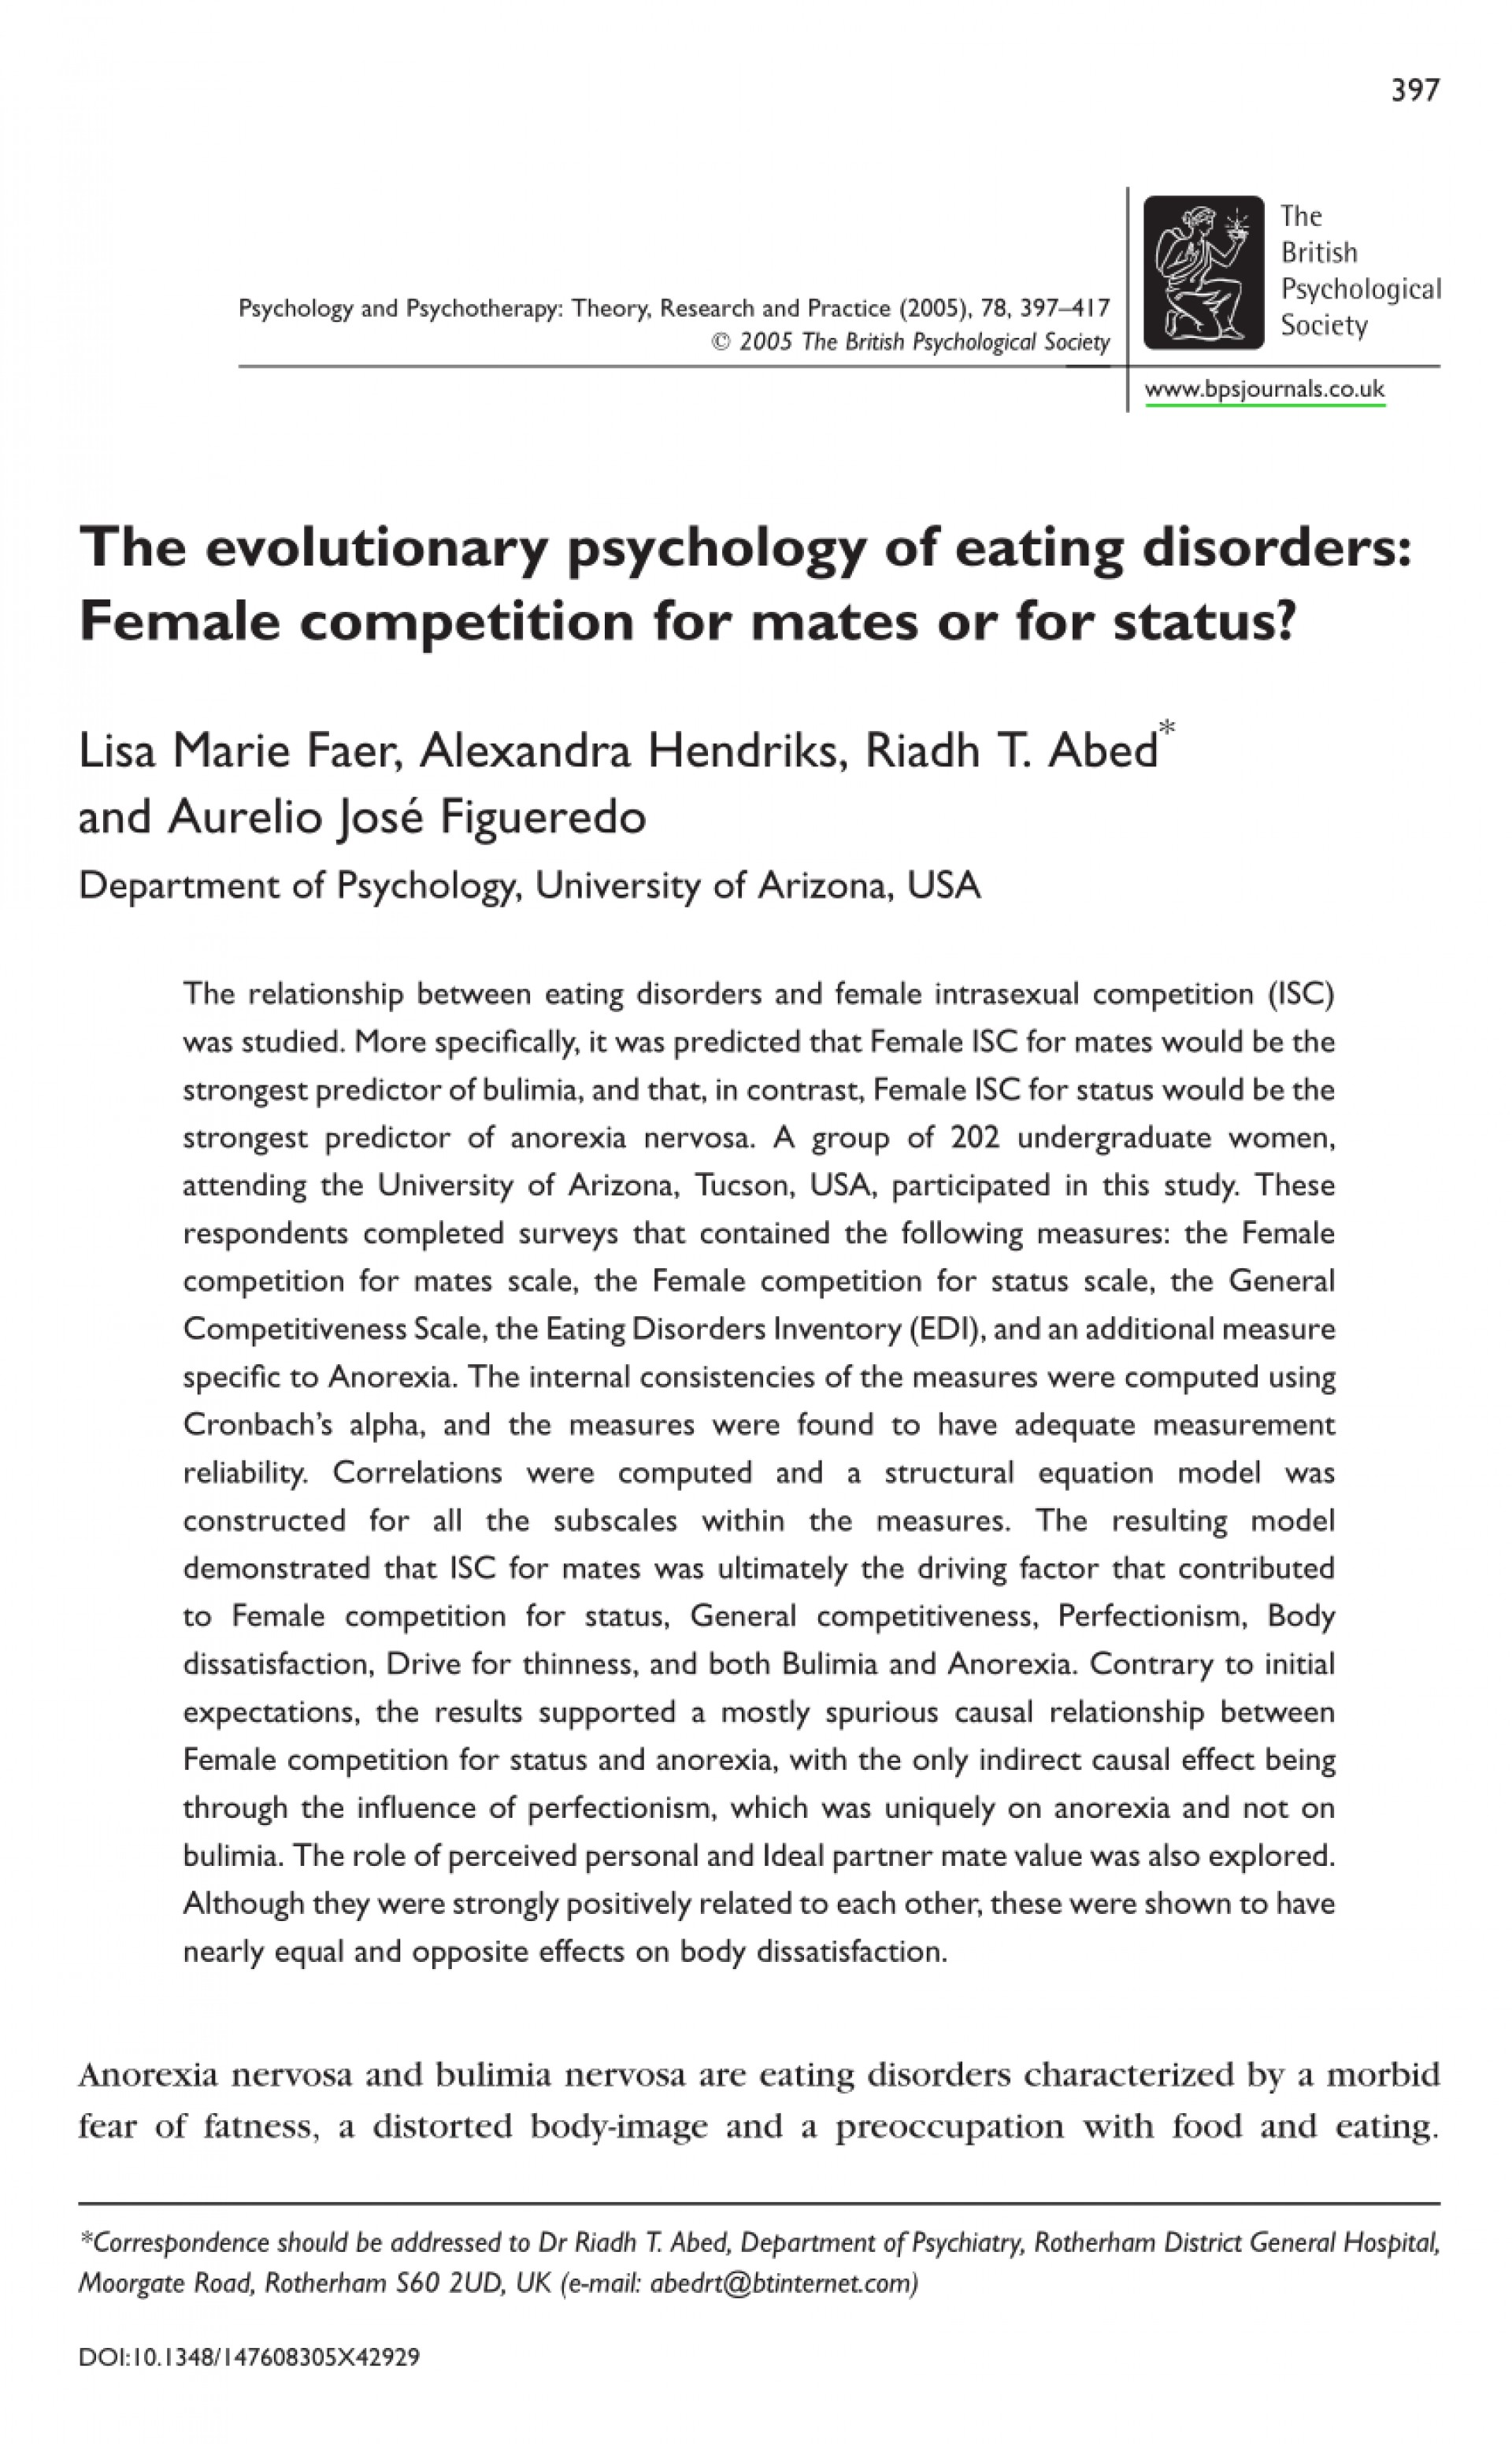 006 Psychology Research Paper On Eating Disorders Top Study Psychological Into Topics 1920